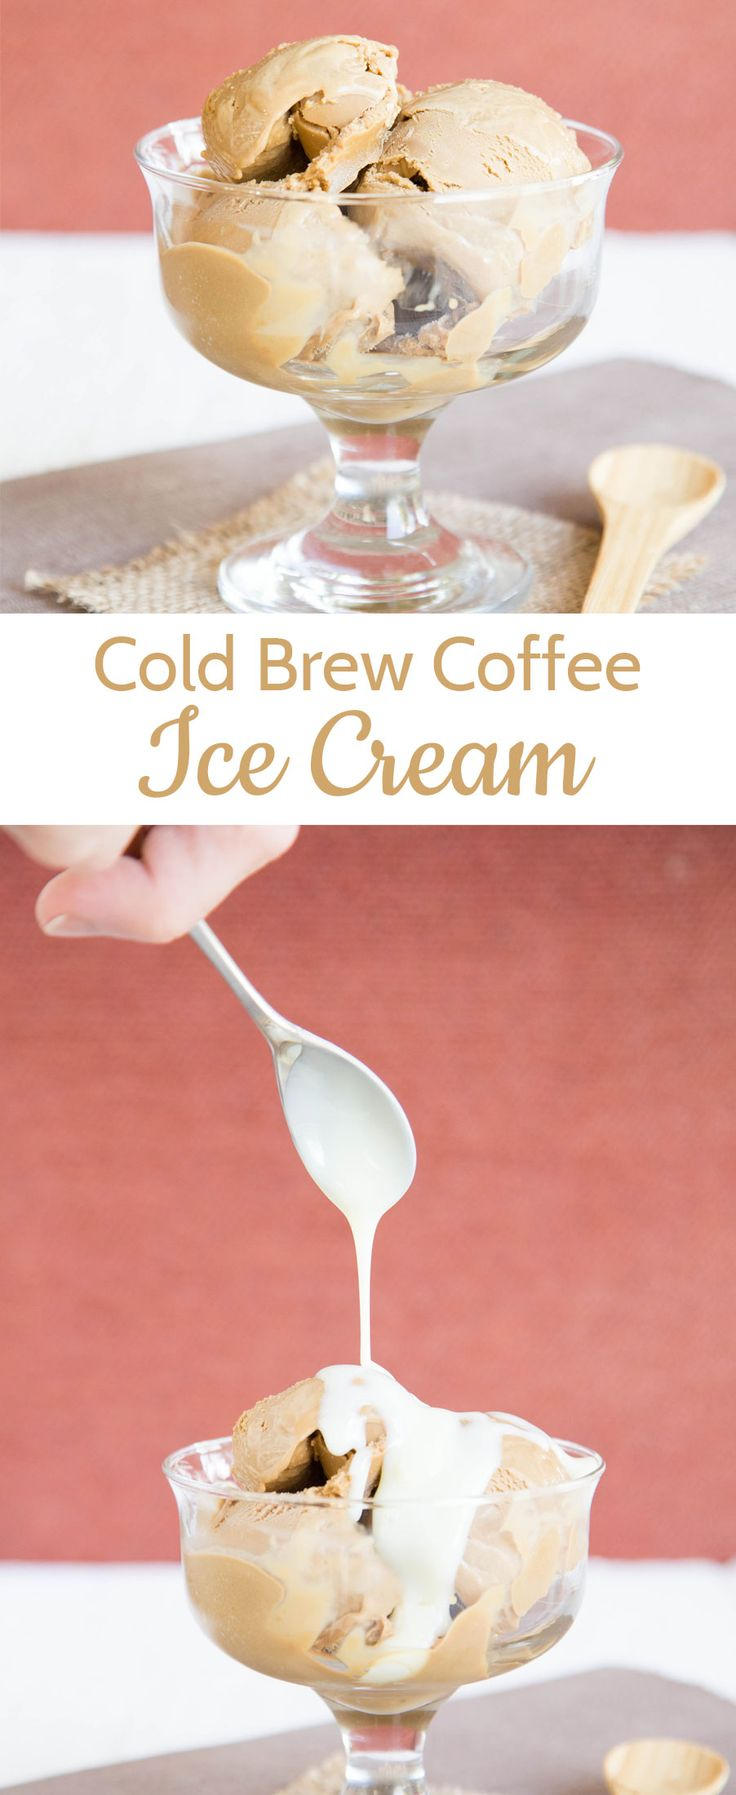 Enjoy this cold brew coffee ice cream for a smooth and tasty ice cream. Delicious at any time of year, but particularly good in the summer.